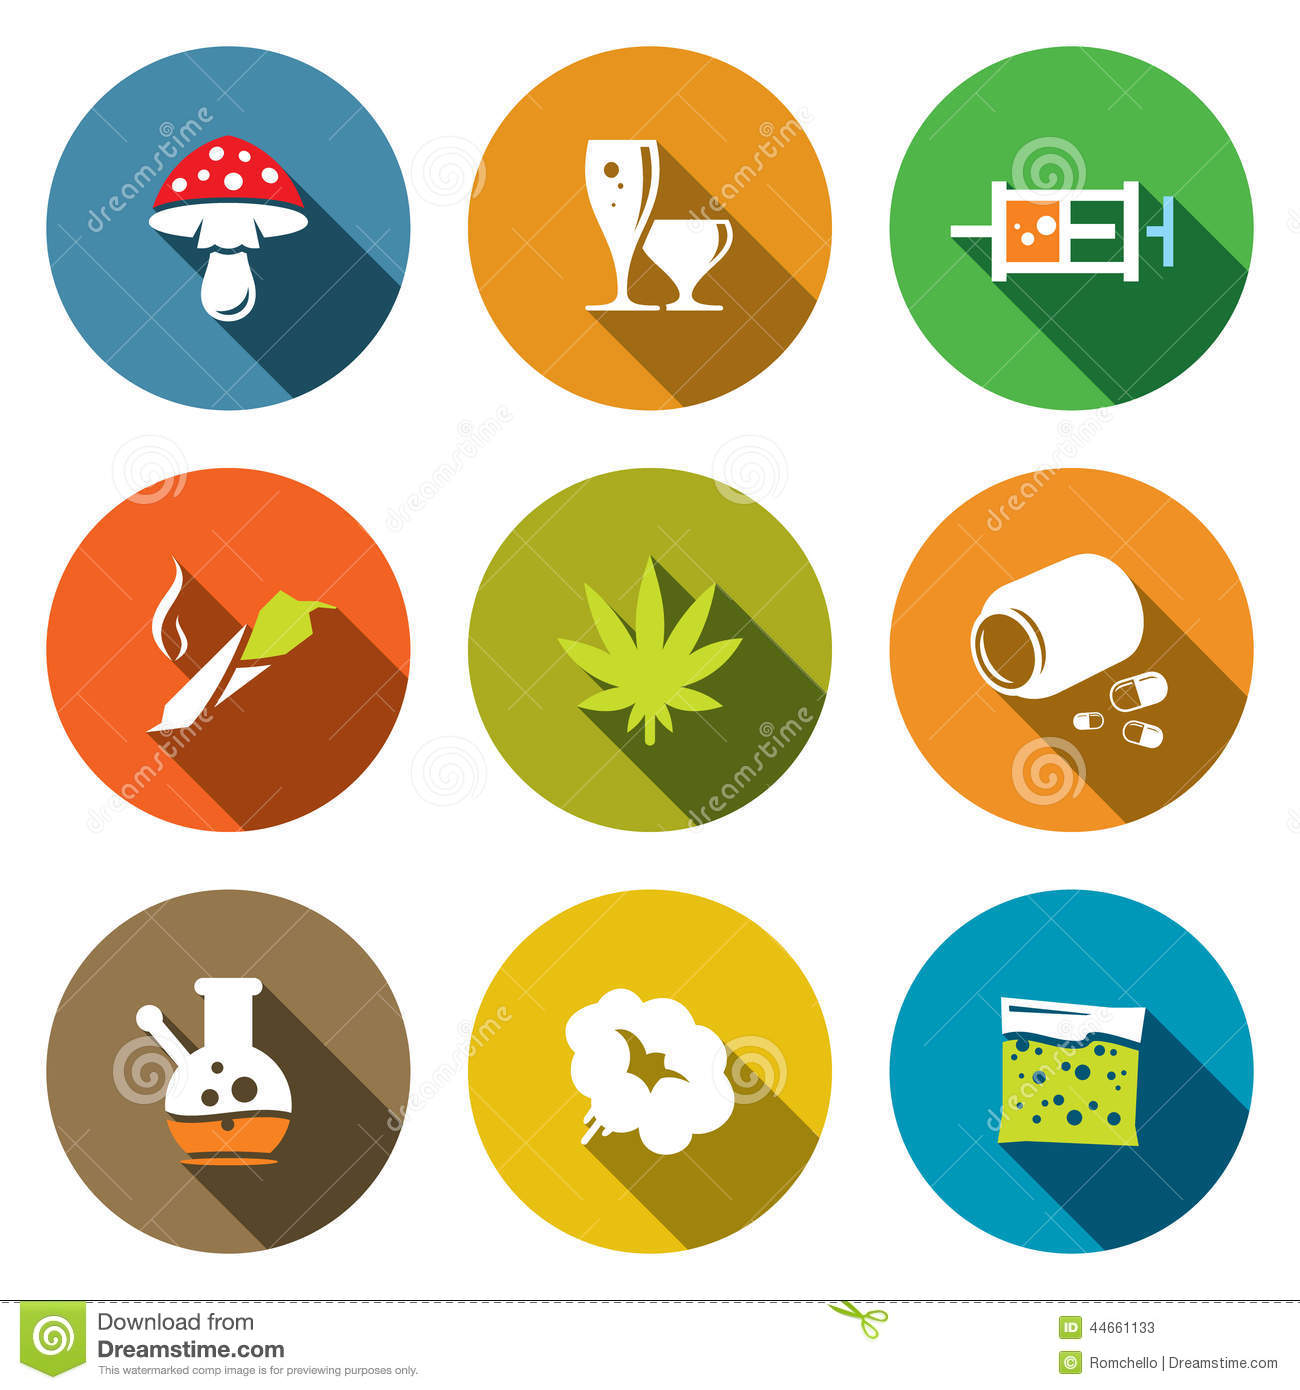 Color Drugs Flat Icon Collection Stock Illustration - Image: 44661133